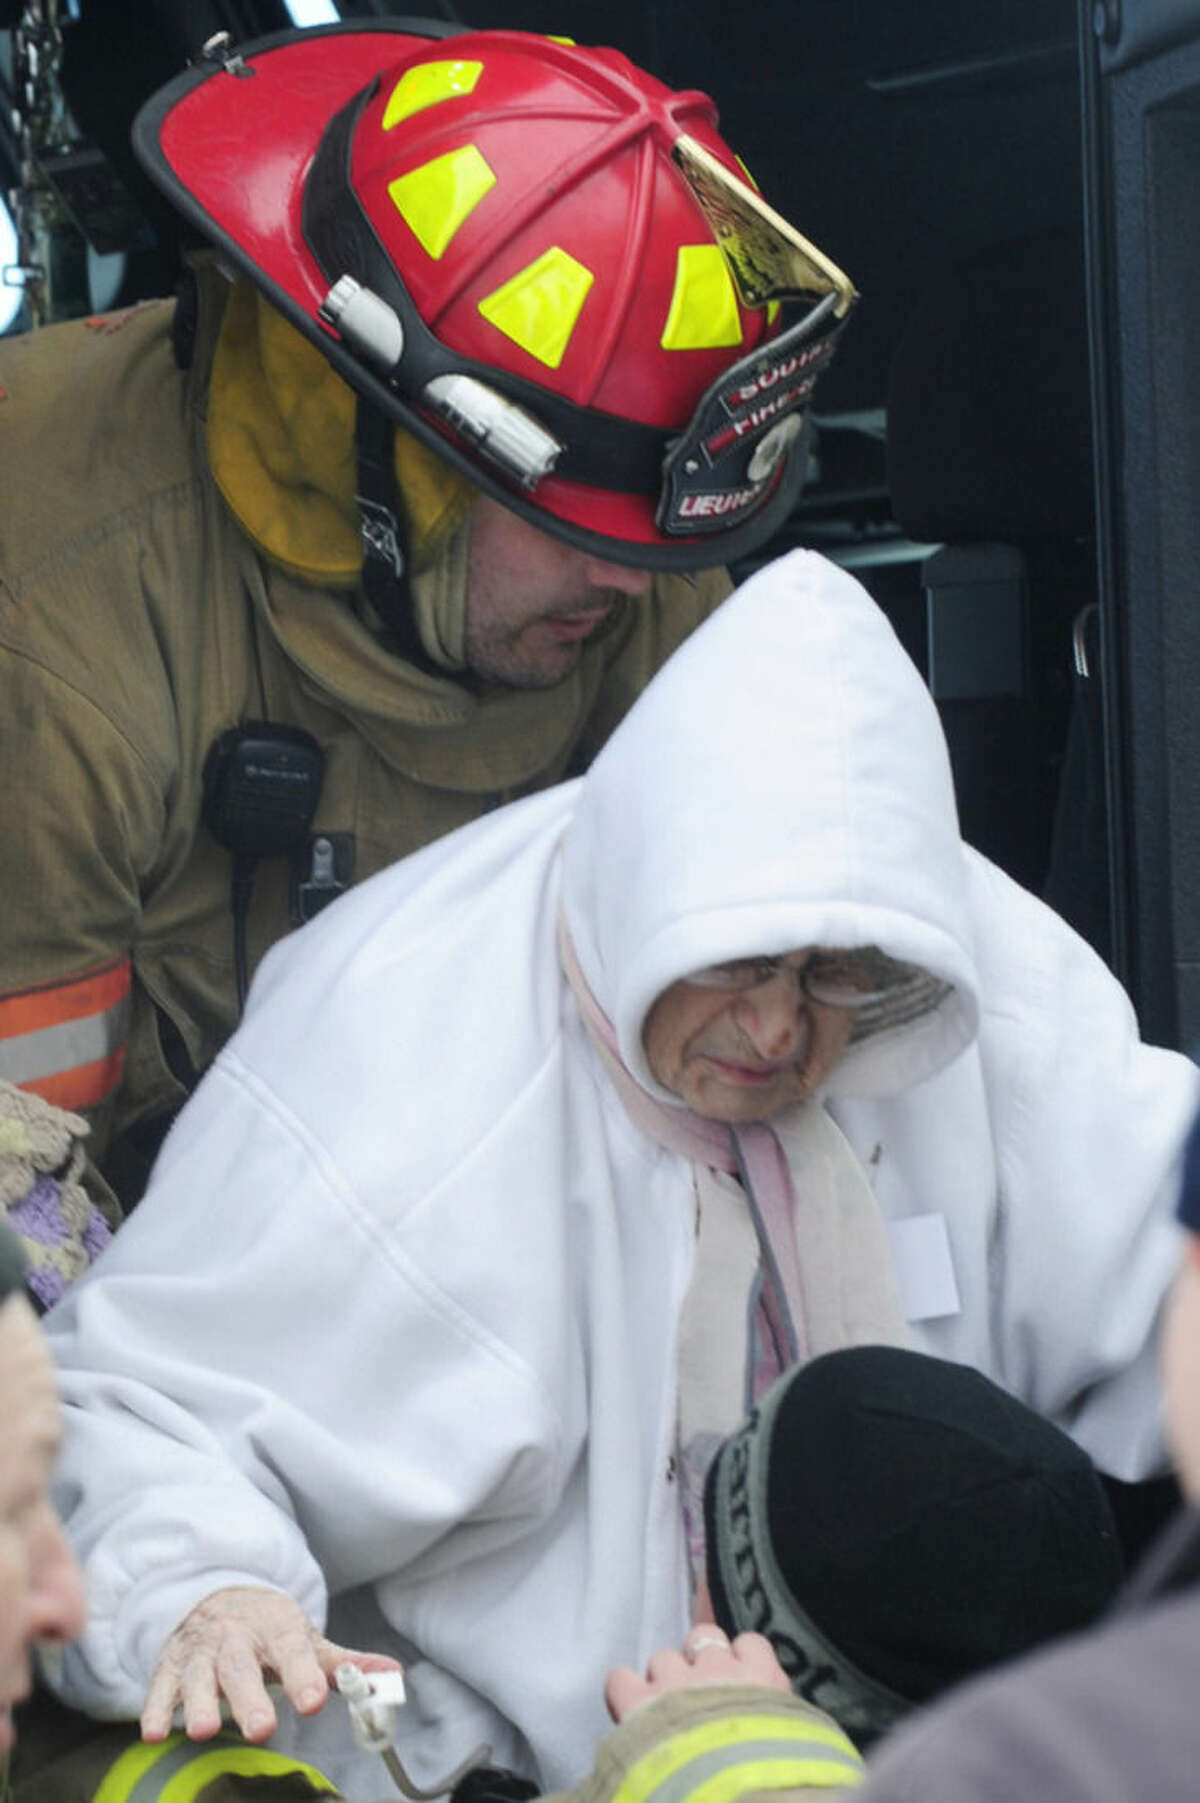 A firefighter from South Line lowers an elderly patient as she arrives to the Appletree Mall in Cheektowaga, N.Y., Thursday, Nov. 20, 2014. About 180 patients from the facility were moved after officials questioned sustainability of the the roof from the snowfall. Roofs began to creak and collapse under the weight of excessive snow as another storm added to epic snowfall in western New York state. (AP Photo/Gary Wiepert)